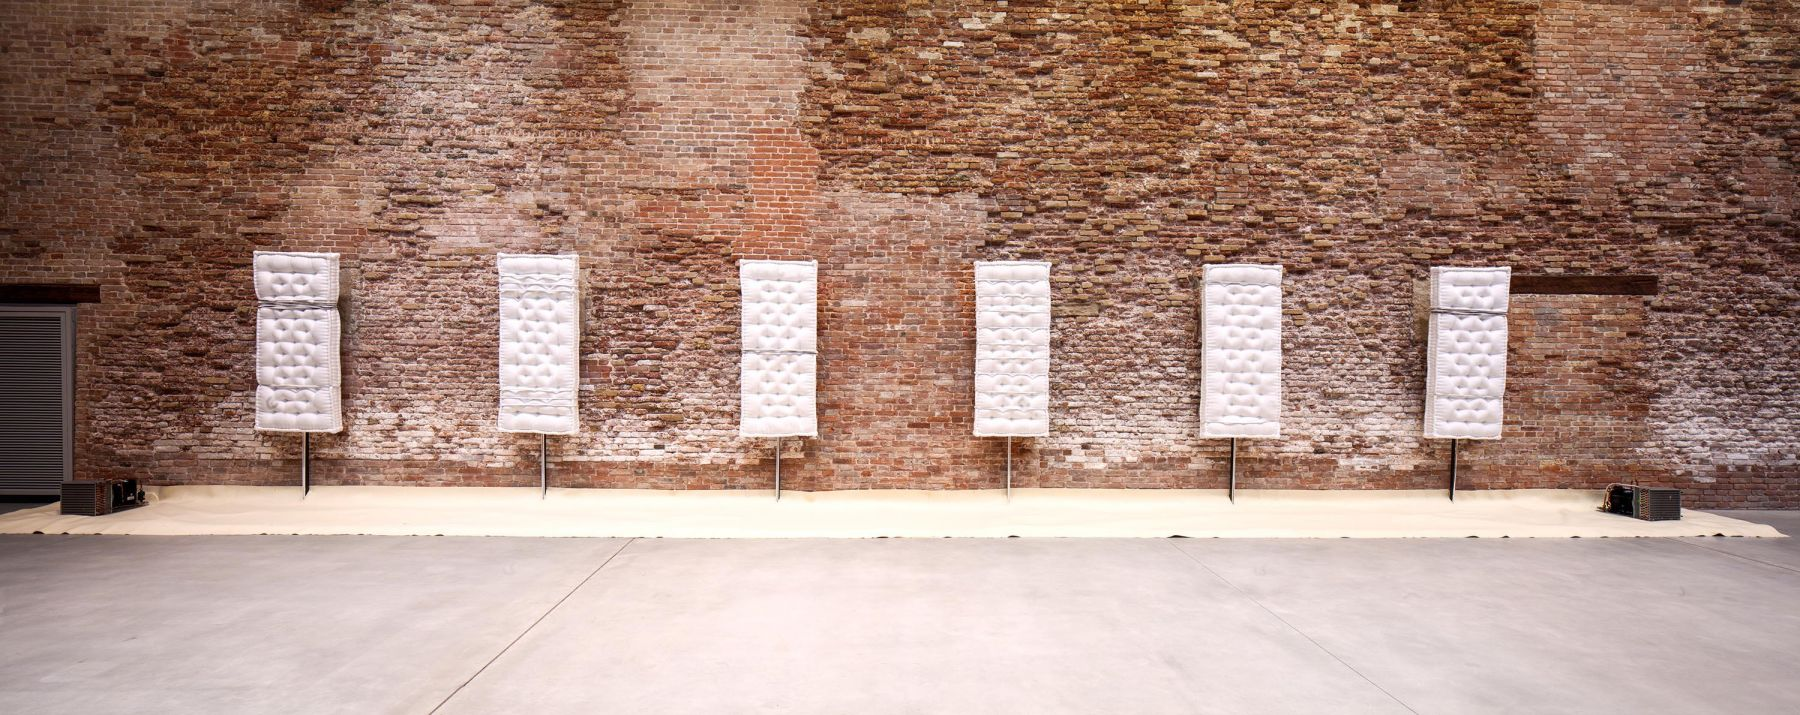 an installation of sculptures by Pier Paolo Calzolari in a contemporary art gallery